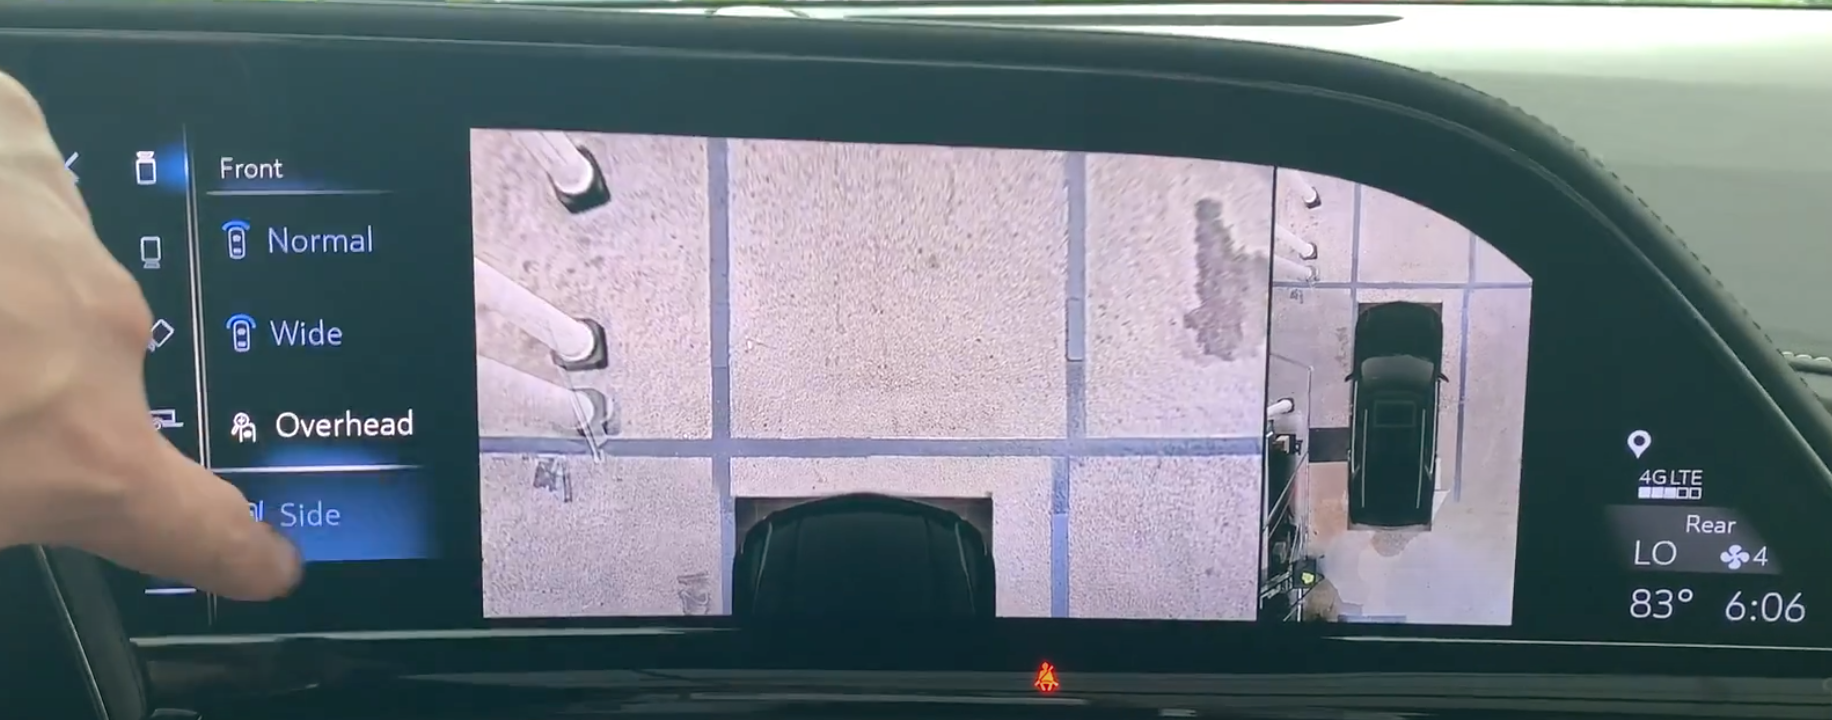 Top camera view displayed on the infotainment screen